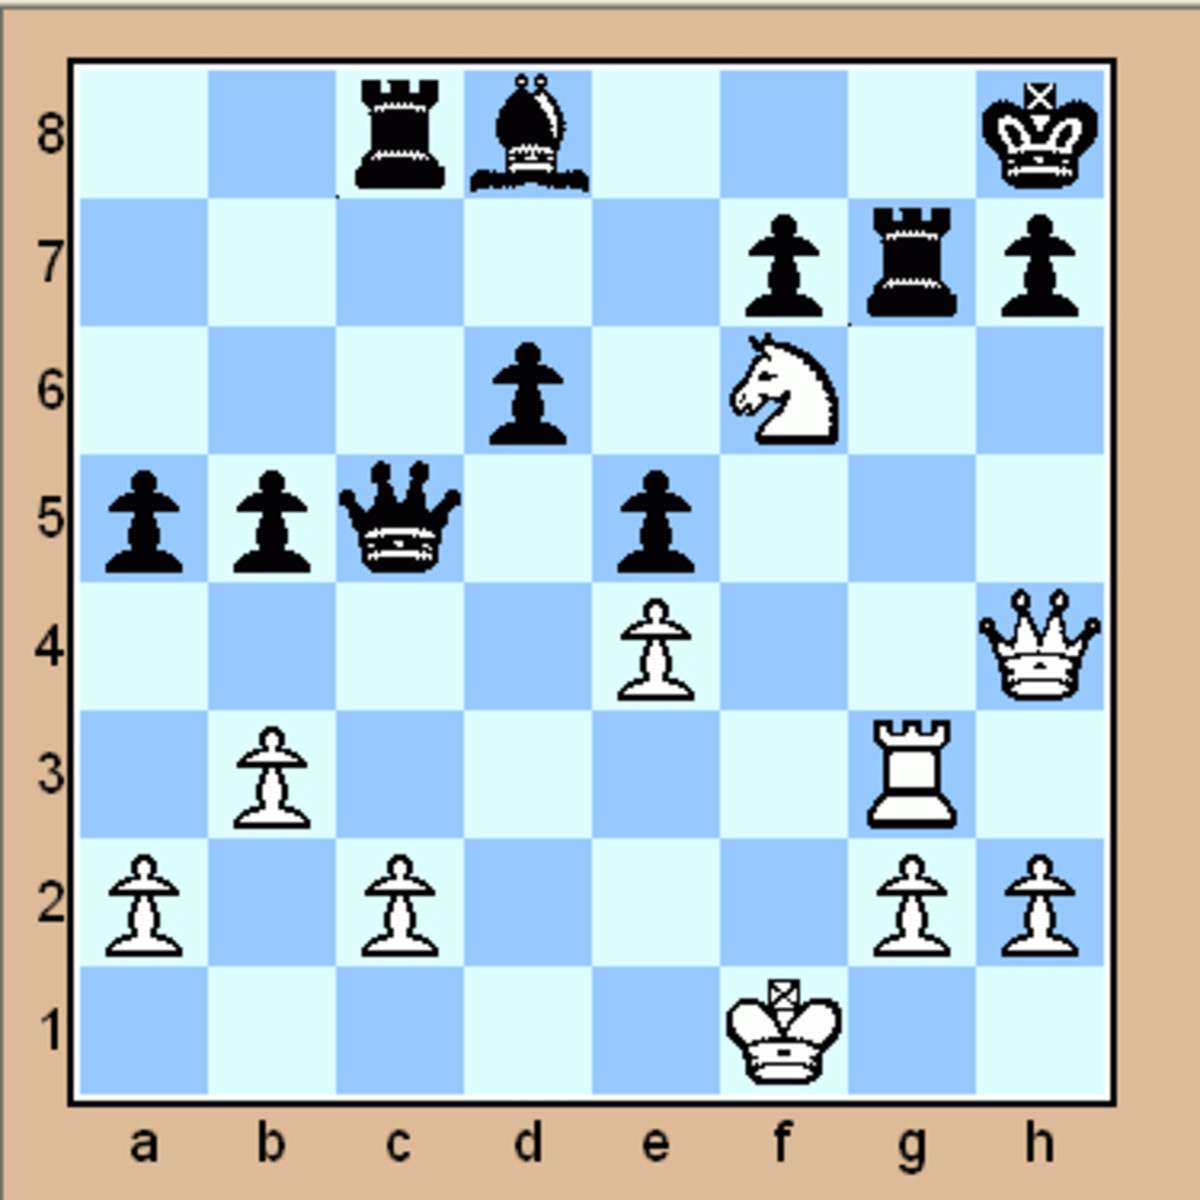 Please scroll down to see the mate in 2 chess puzzles.